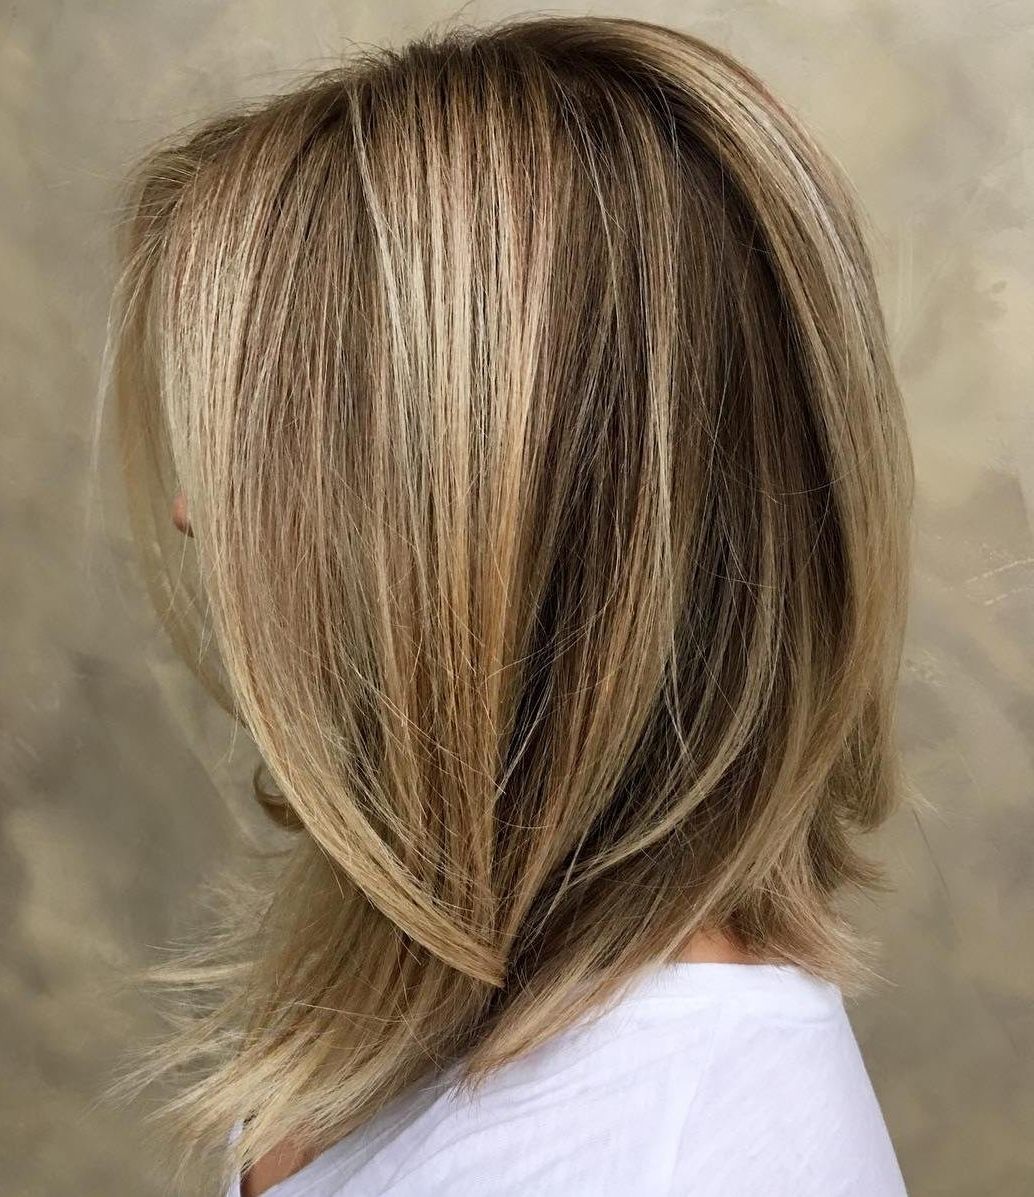 60 Inspiring Long Bob Hairstyles And Lob Haircuts 2018 Within Current Bouncy Caramel Blonde Bob Hairstyles (View 7 of 20)